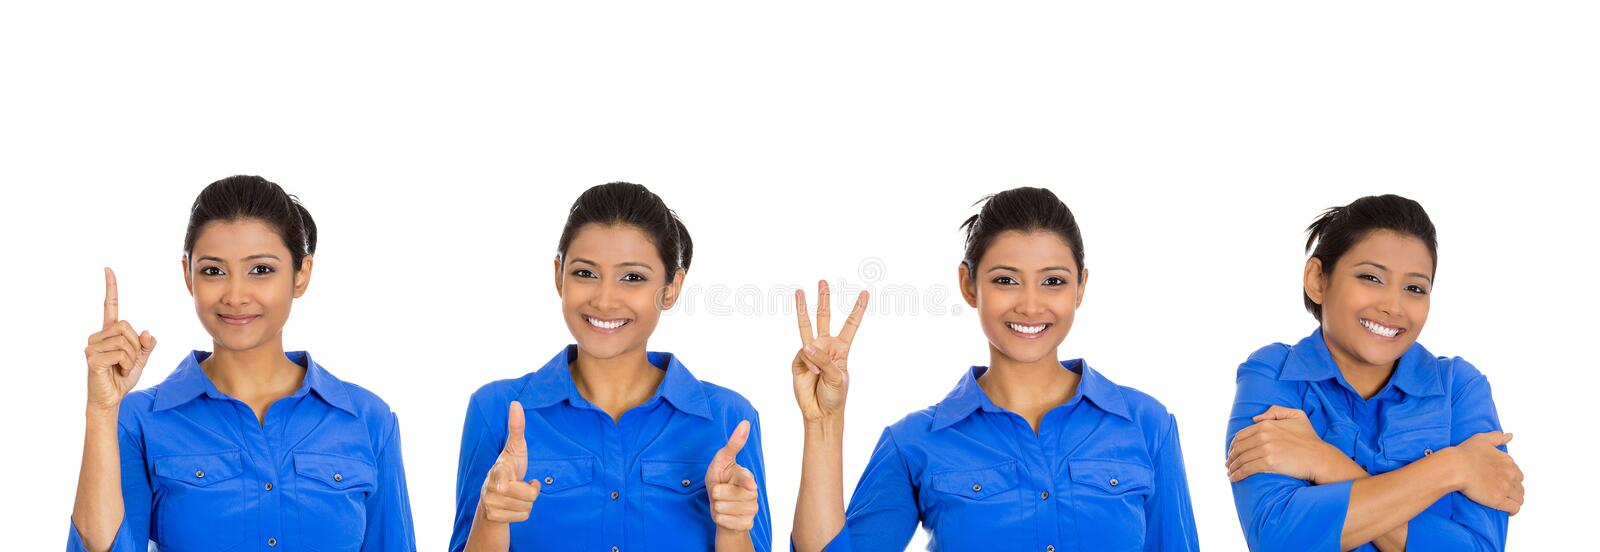 Cute happy woman giving different gestures royalty free stock images